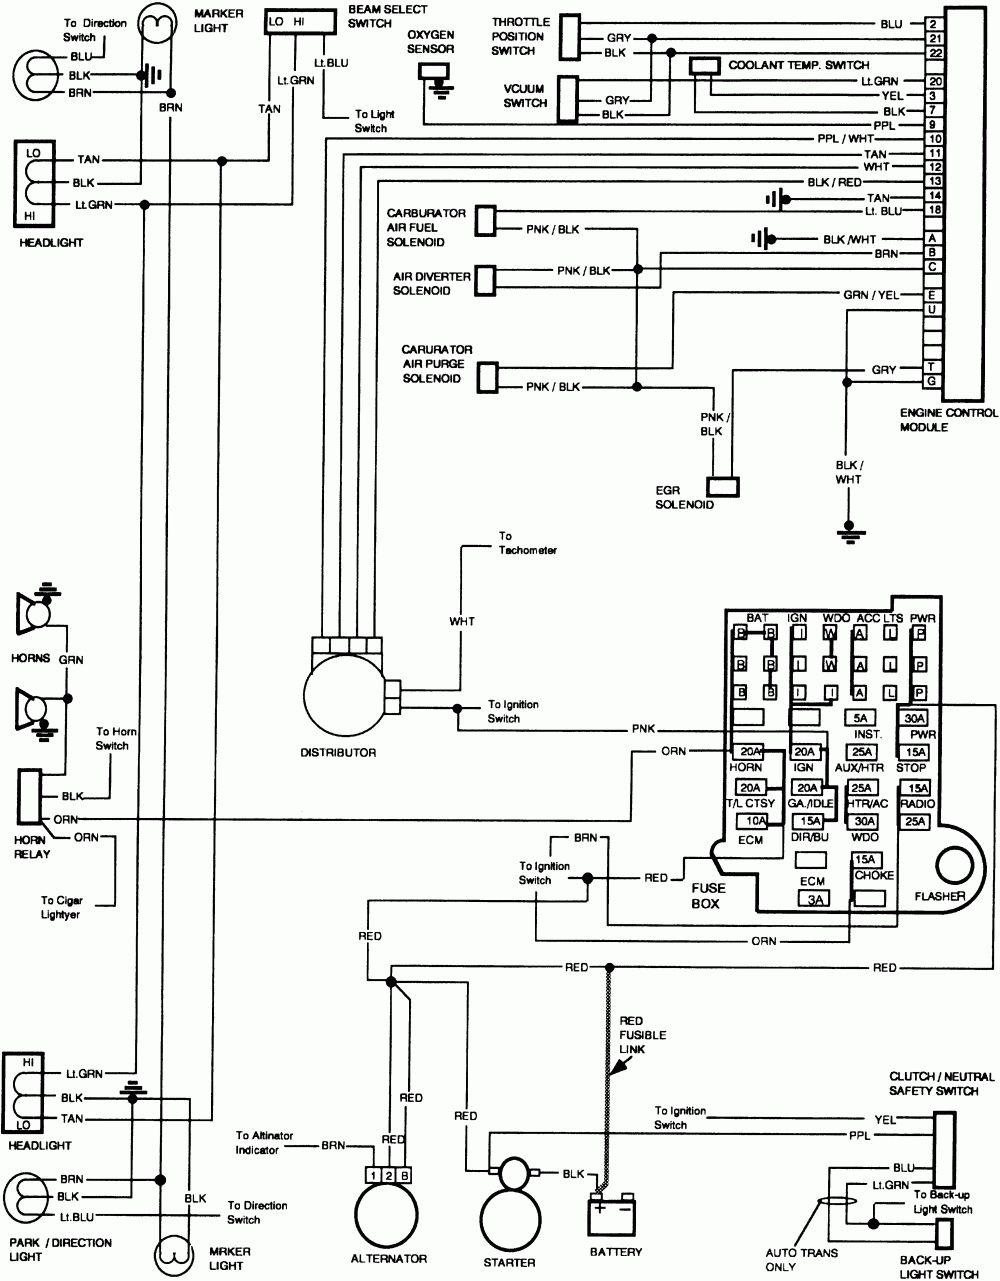 86 Chevy Truck Wiring Diagram Repair Guides Wiring Diagrams Wiring Diagrams  Autozone In 1986 Chevy Truck Wir… | 1985 chevy truck, 1986 chevy truck,  1984 chevy truckPinterest